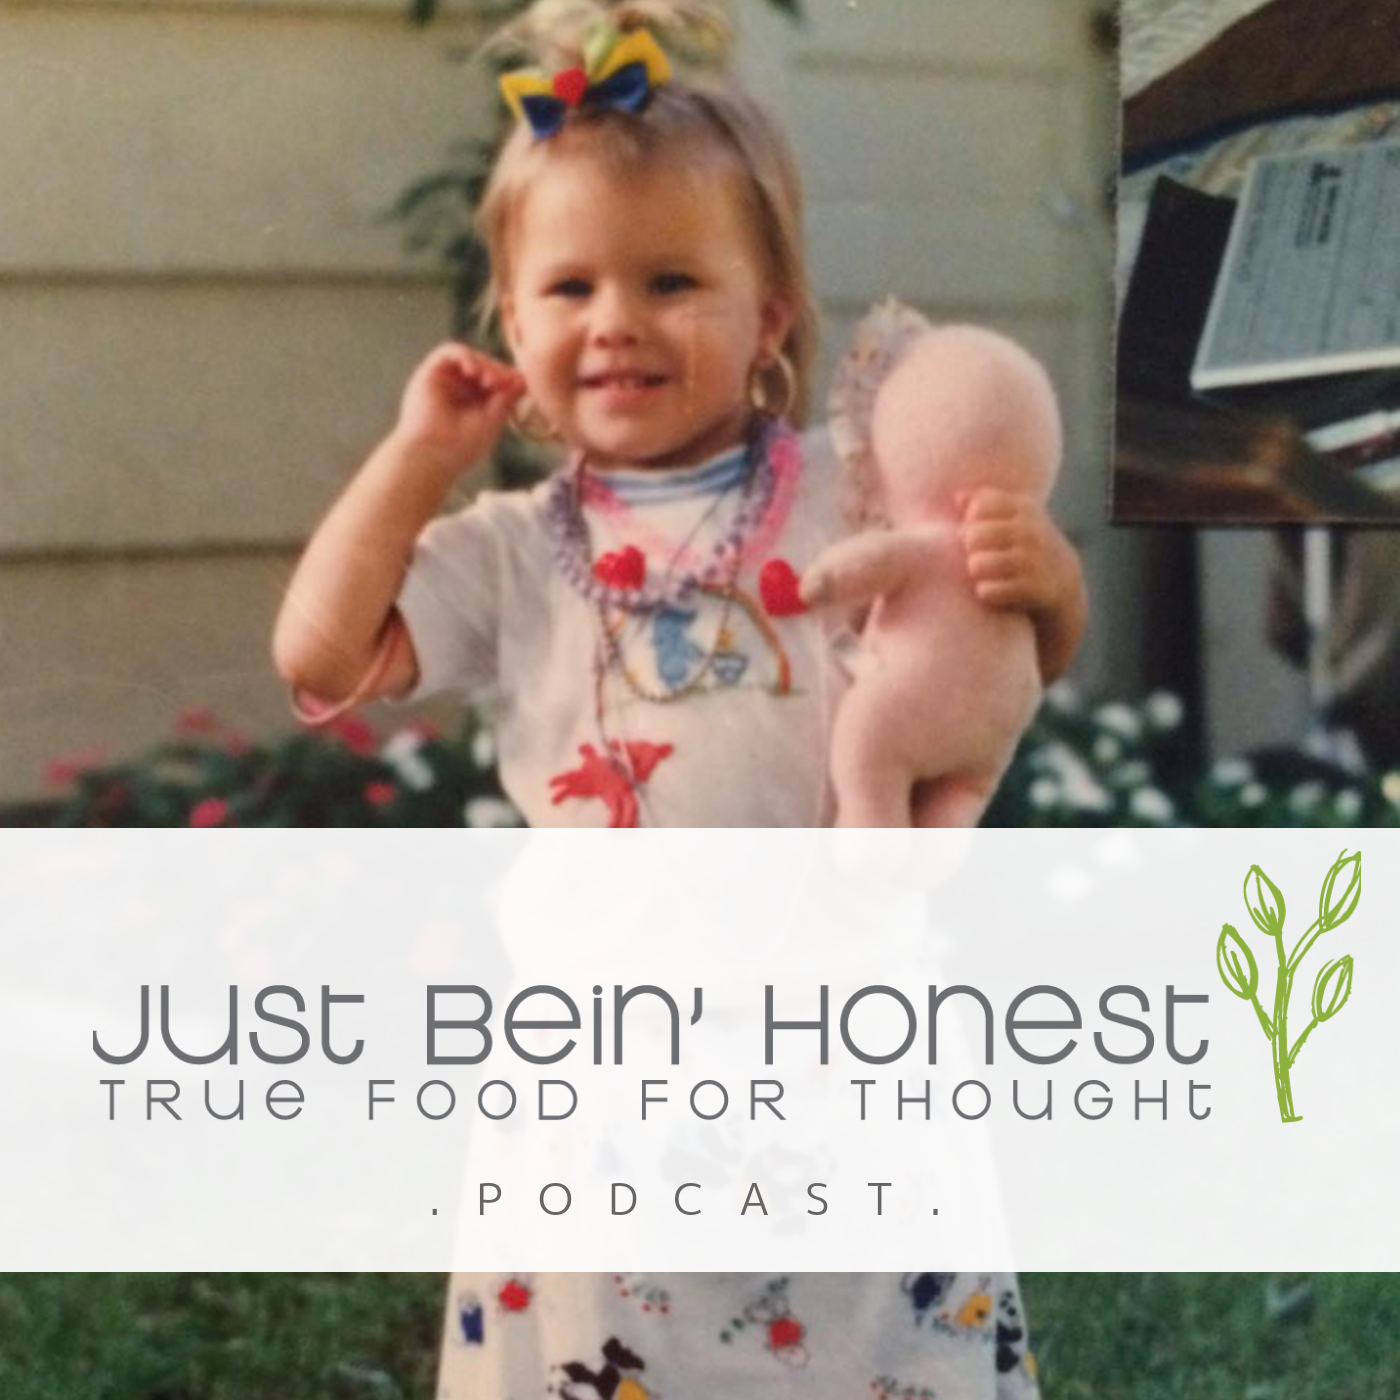 KATHERINE BROWN Ep 89 _ Just Bein' Honest - PODCAST